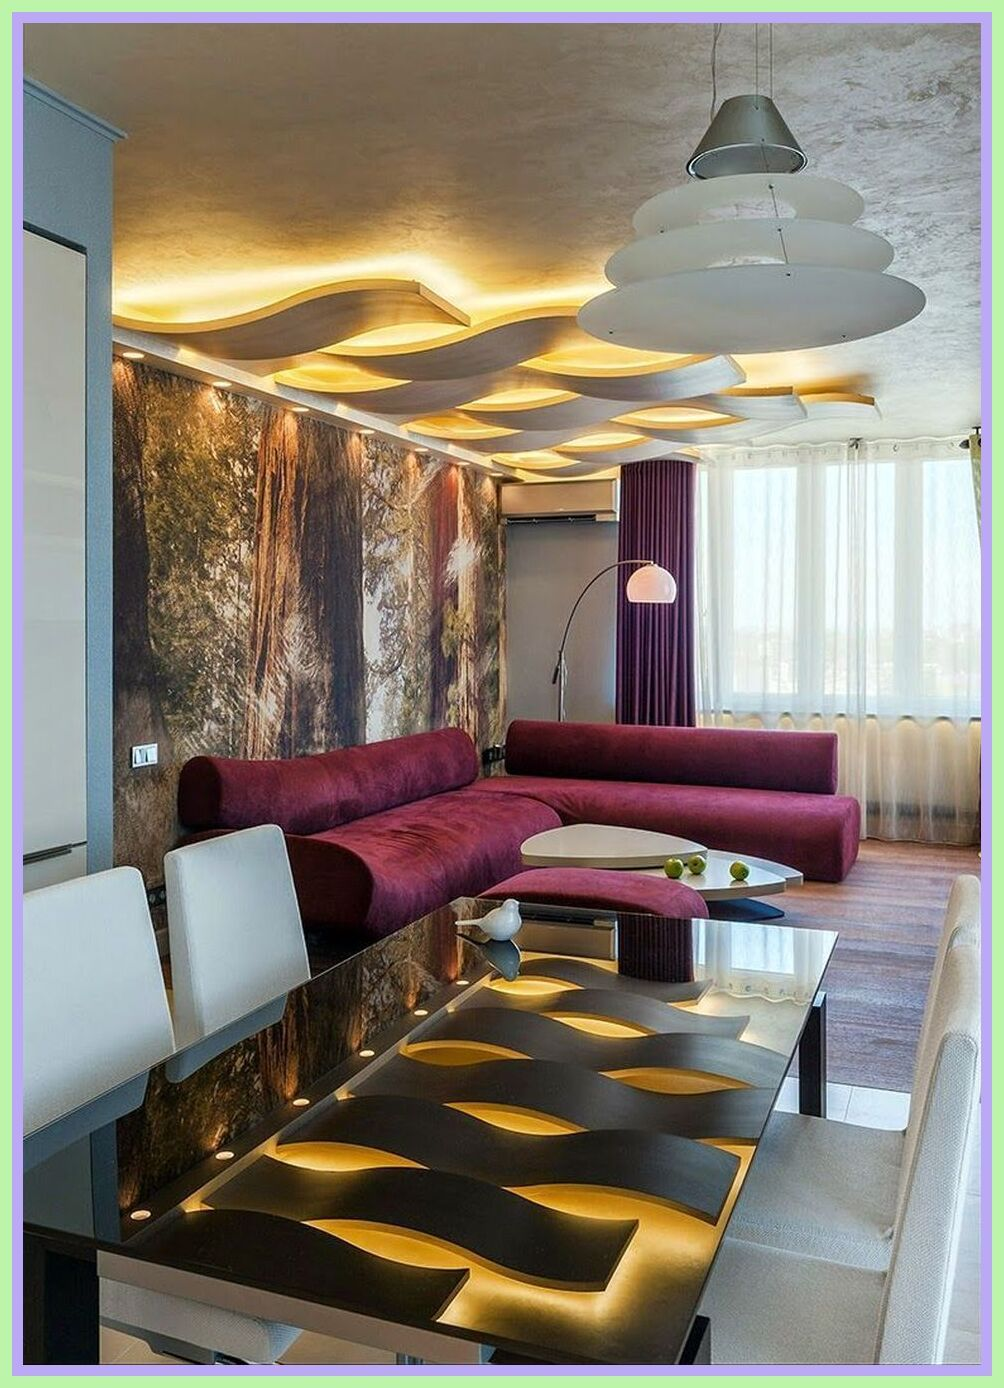 55 Reference Of Roof Room Texture In 2020 False Ceiling Living Room False Ceiling Design Ceiling Design Living Room